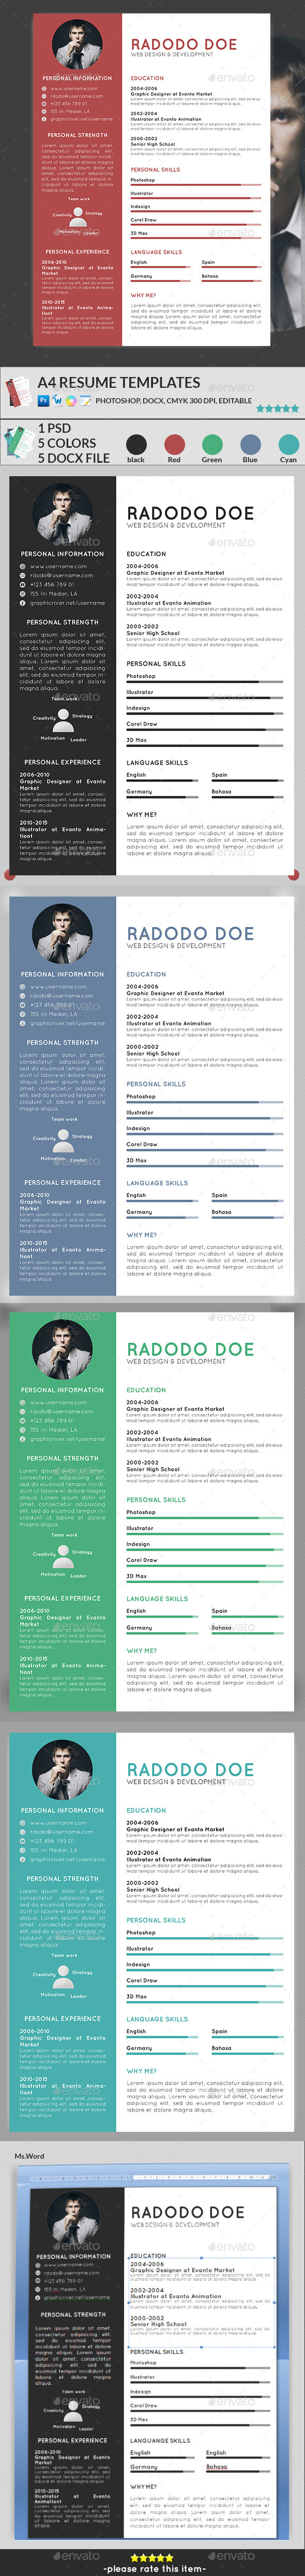 top rated resume templates 2014